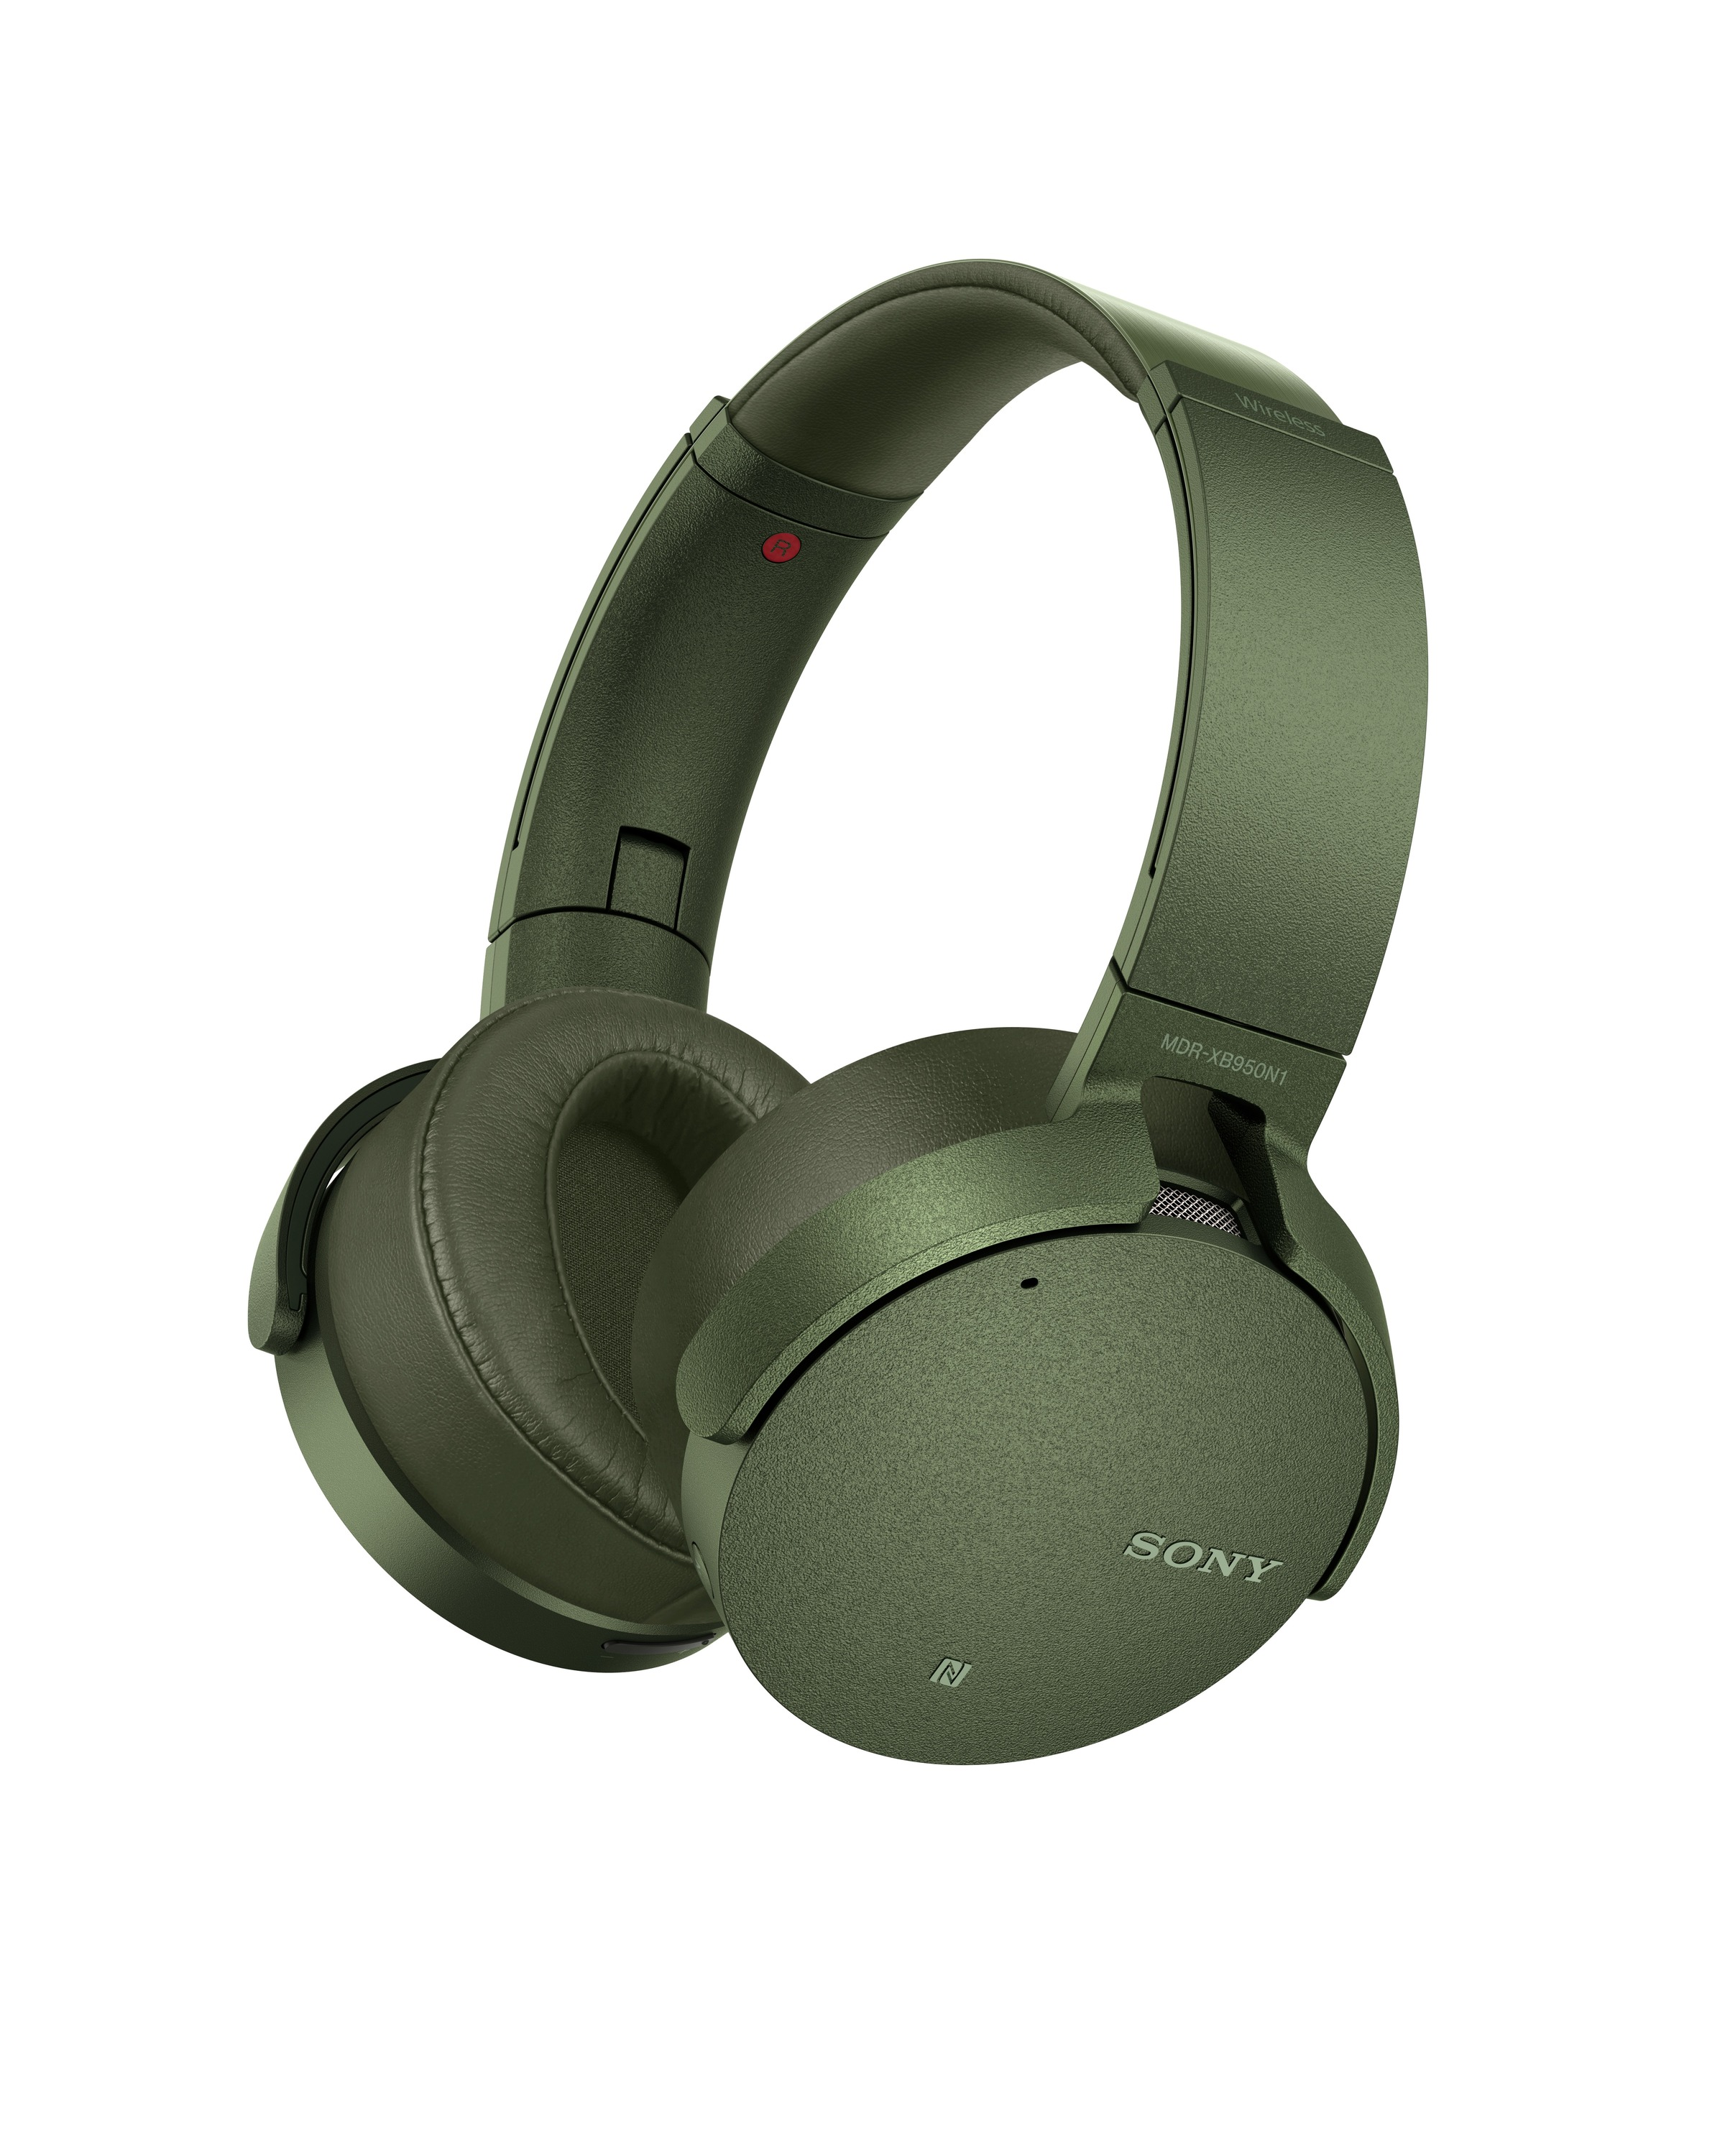 Sony-950N1-Extra-Bass-Wireless-Bluetooth-Noise-Cancelling-Headphones-XB950N1